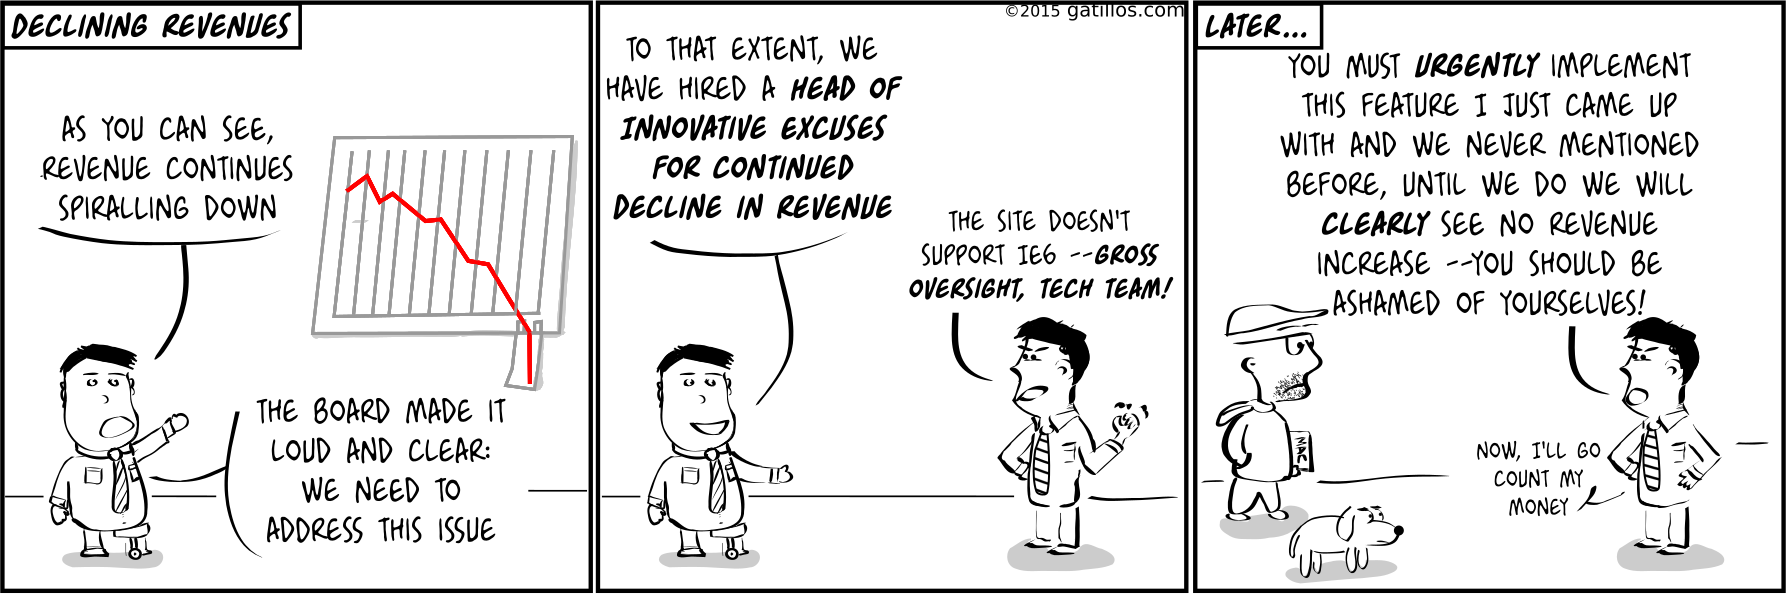 Paul the innovator (78): Declining revenue